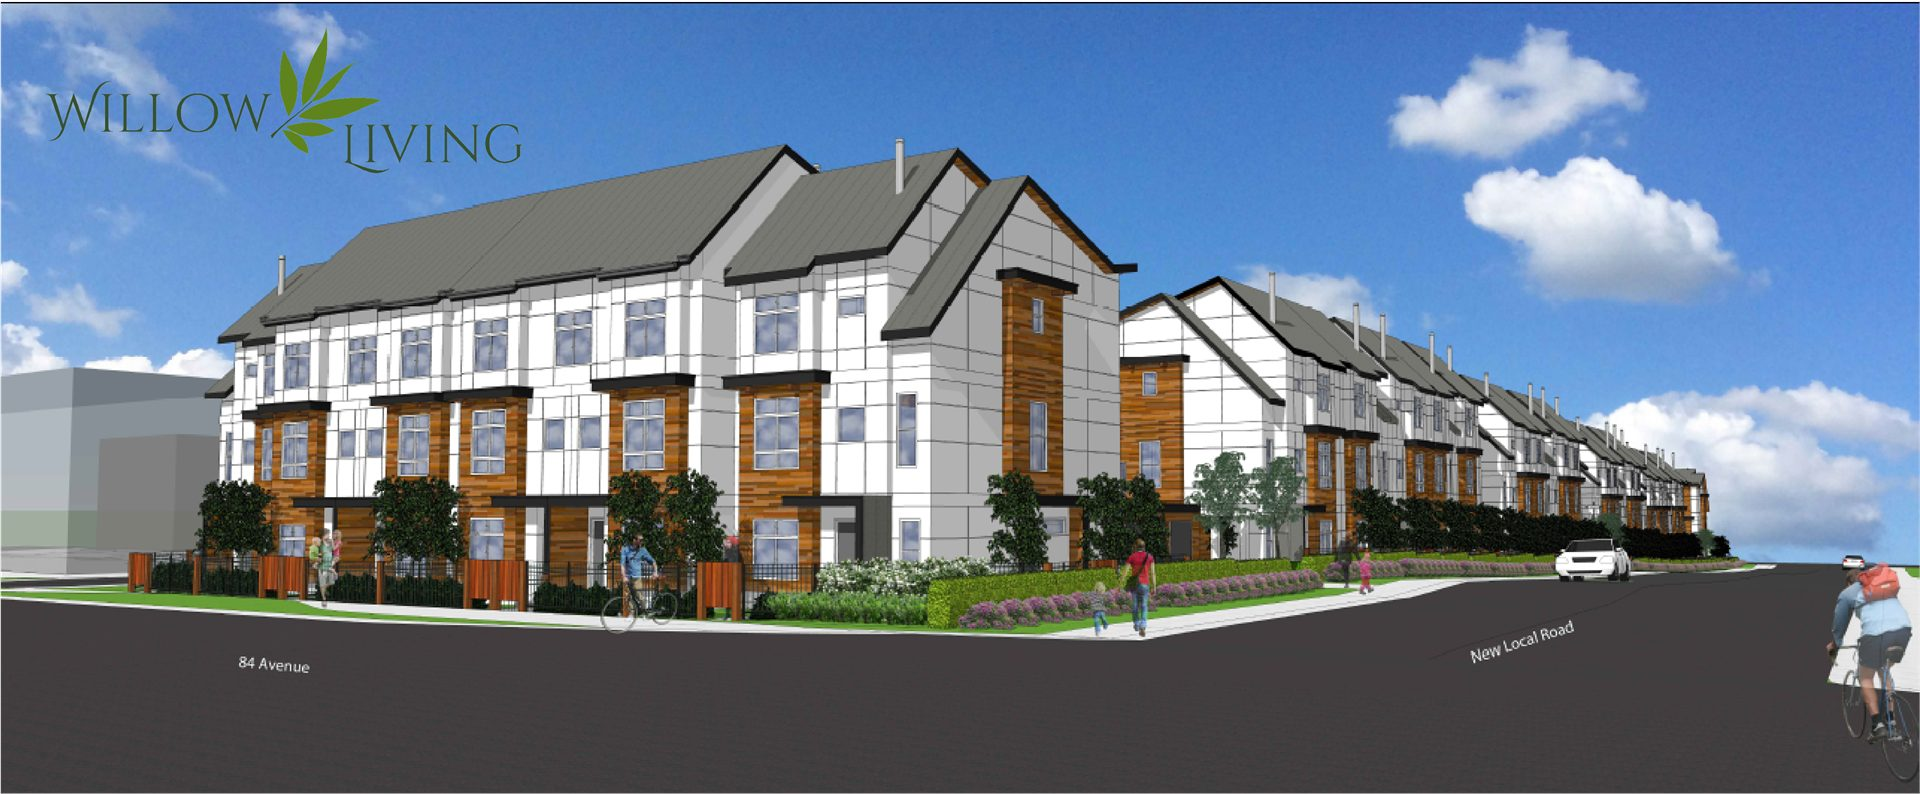 willow living langley townhomes 2 2